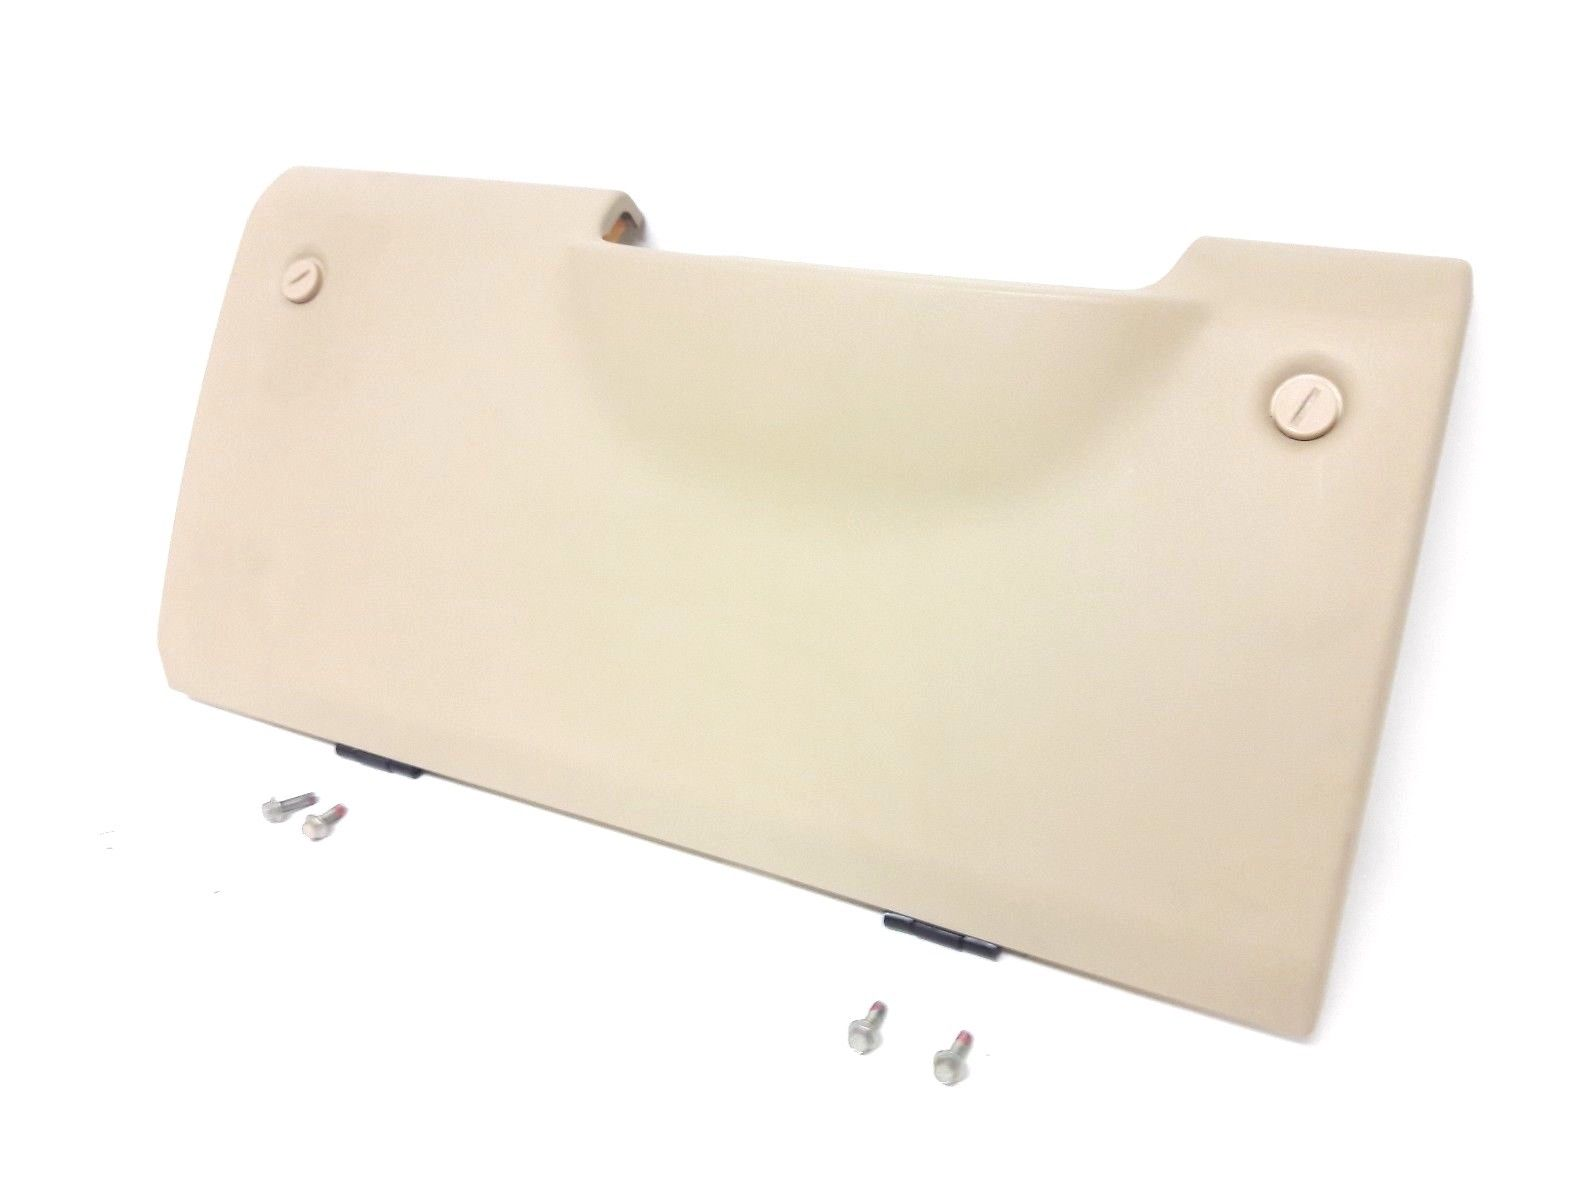 Land Rover Discovery Interior Fuse Box Cover Beige Lower Dash Panel 2003 Awr5838suc Does Not Apply